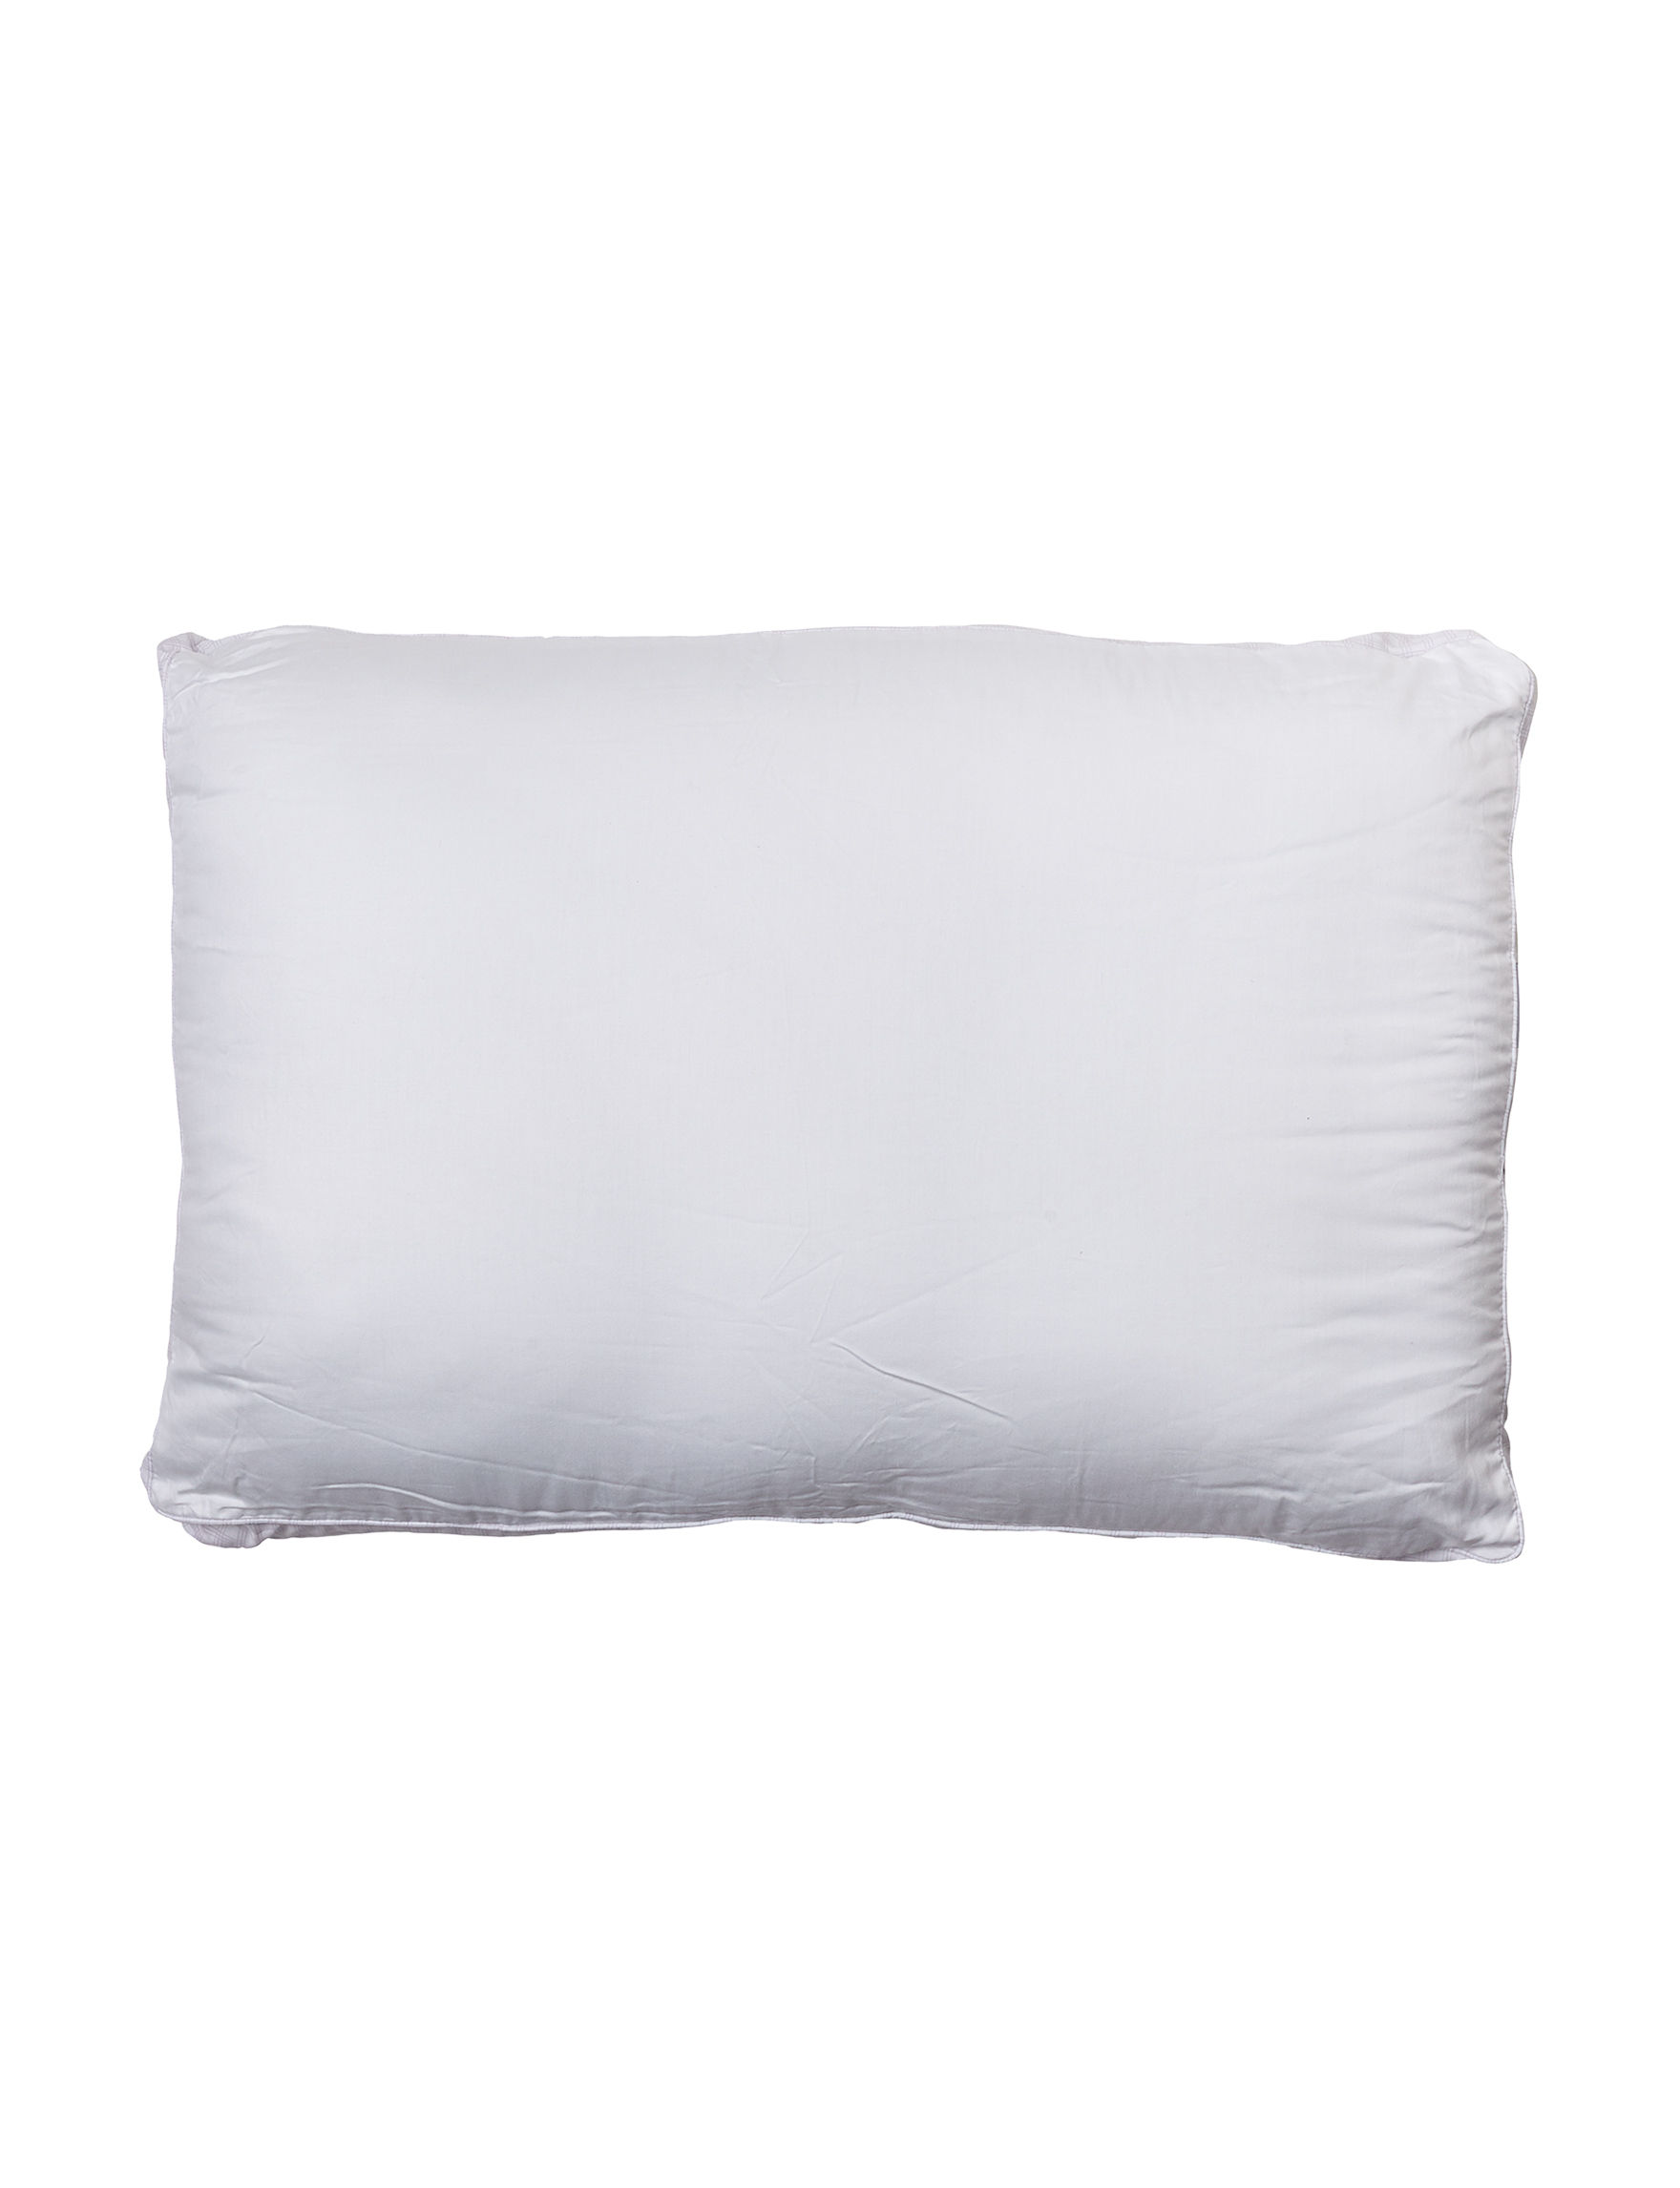 Laura Ashley White Bed Pillows